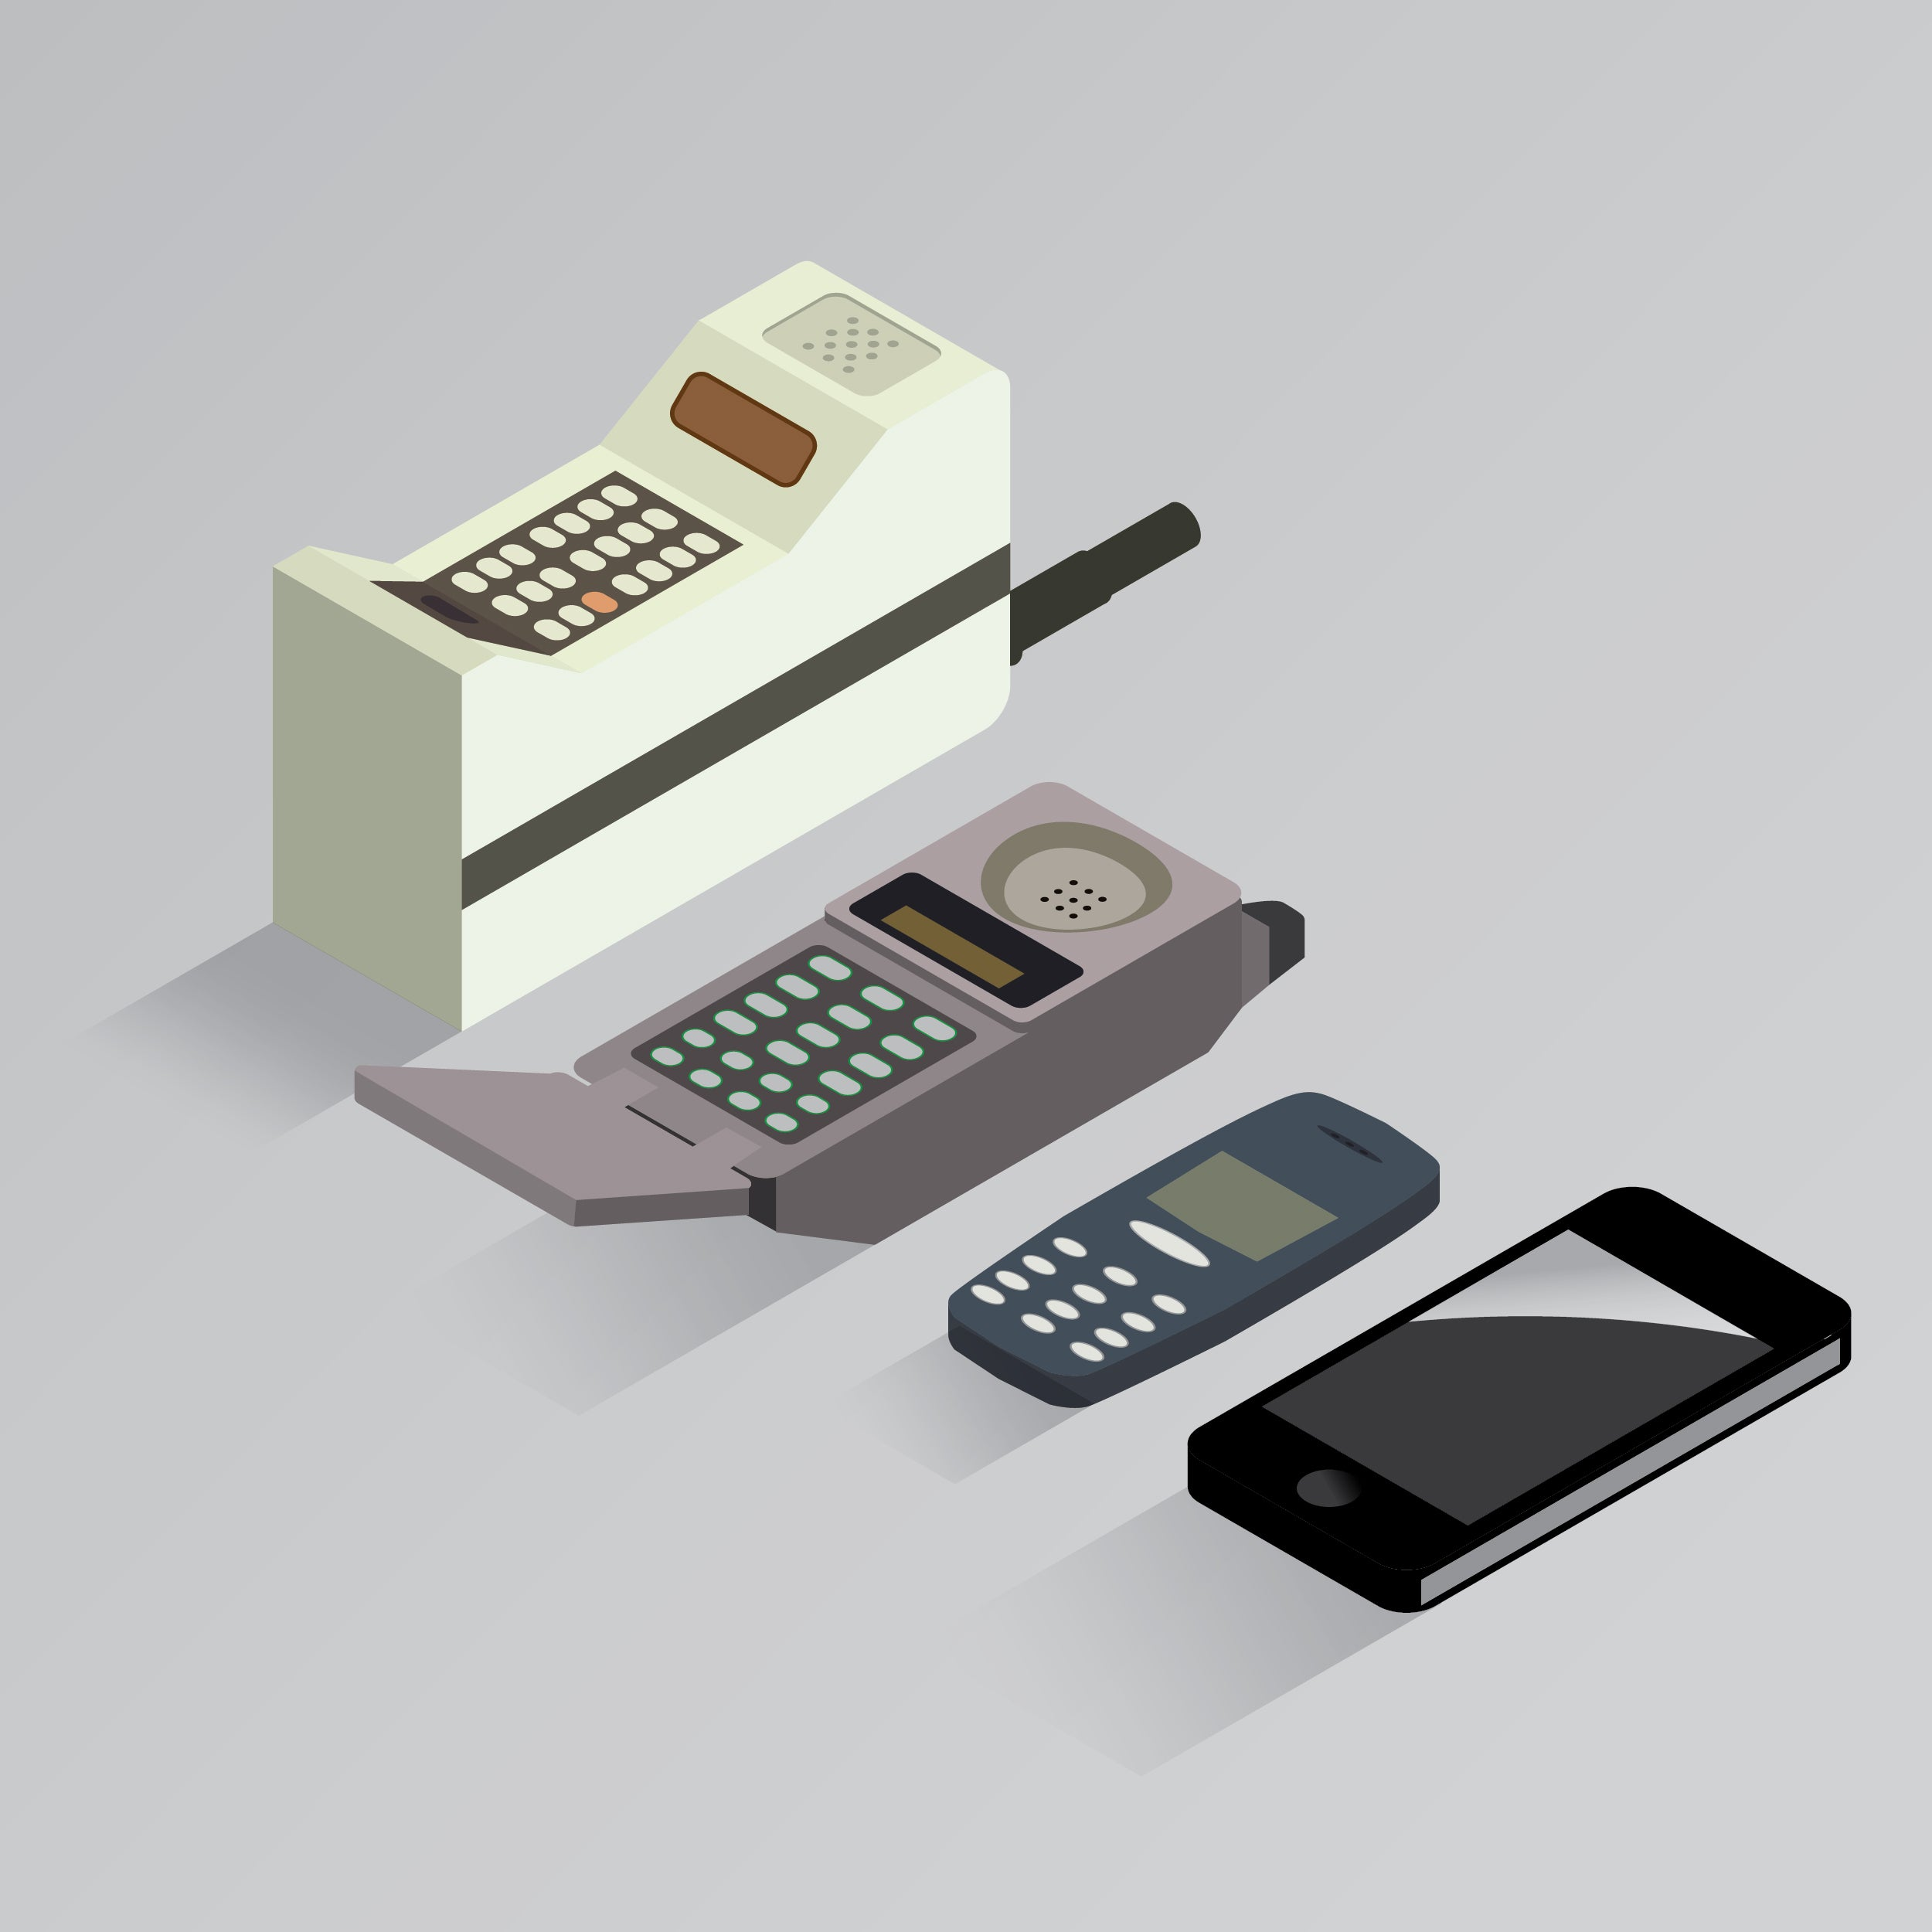 What Was Your First Smartphone?